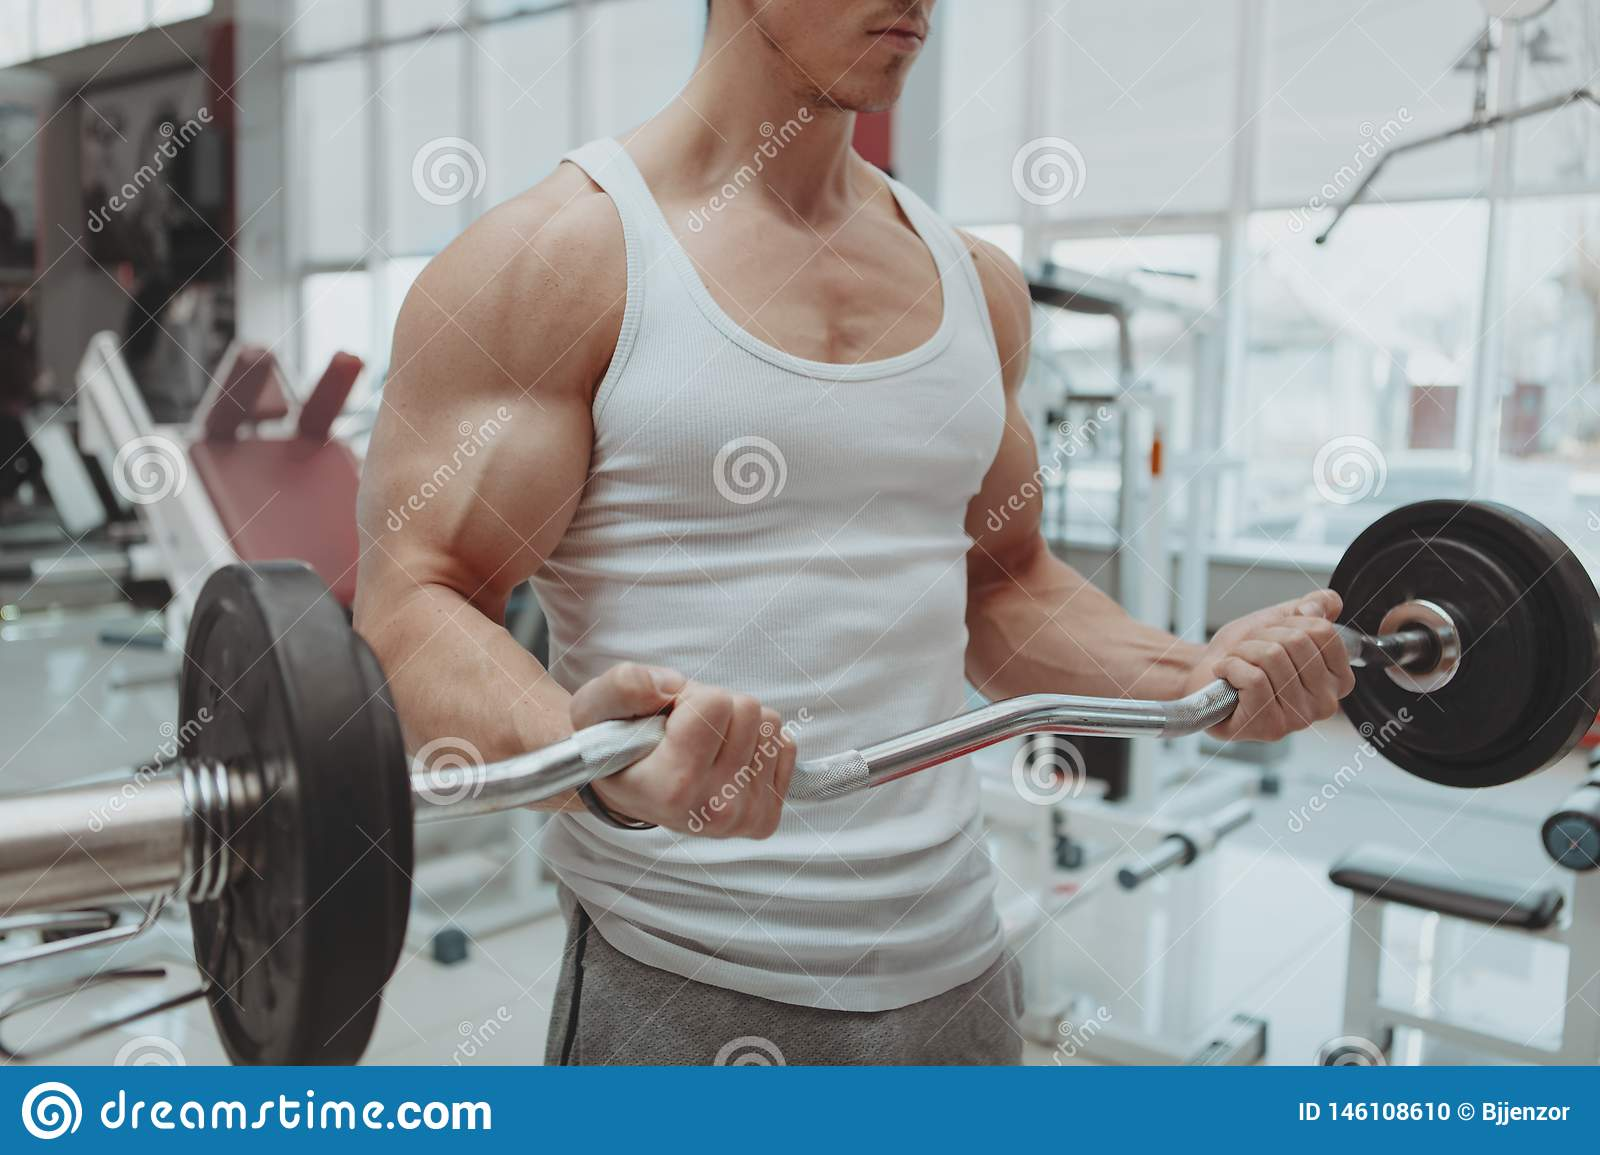 Muscular man working out at the gym